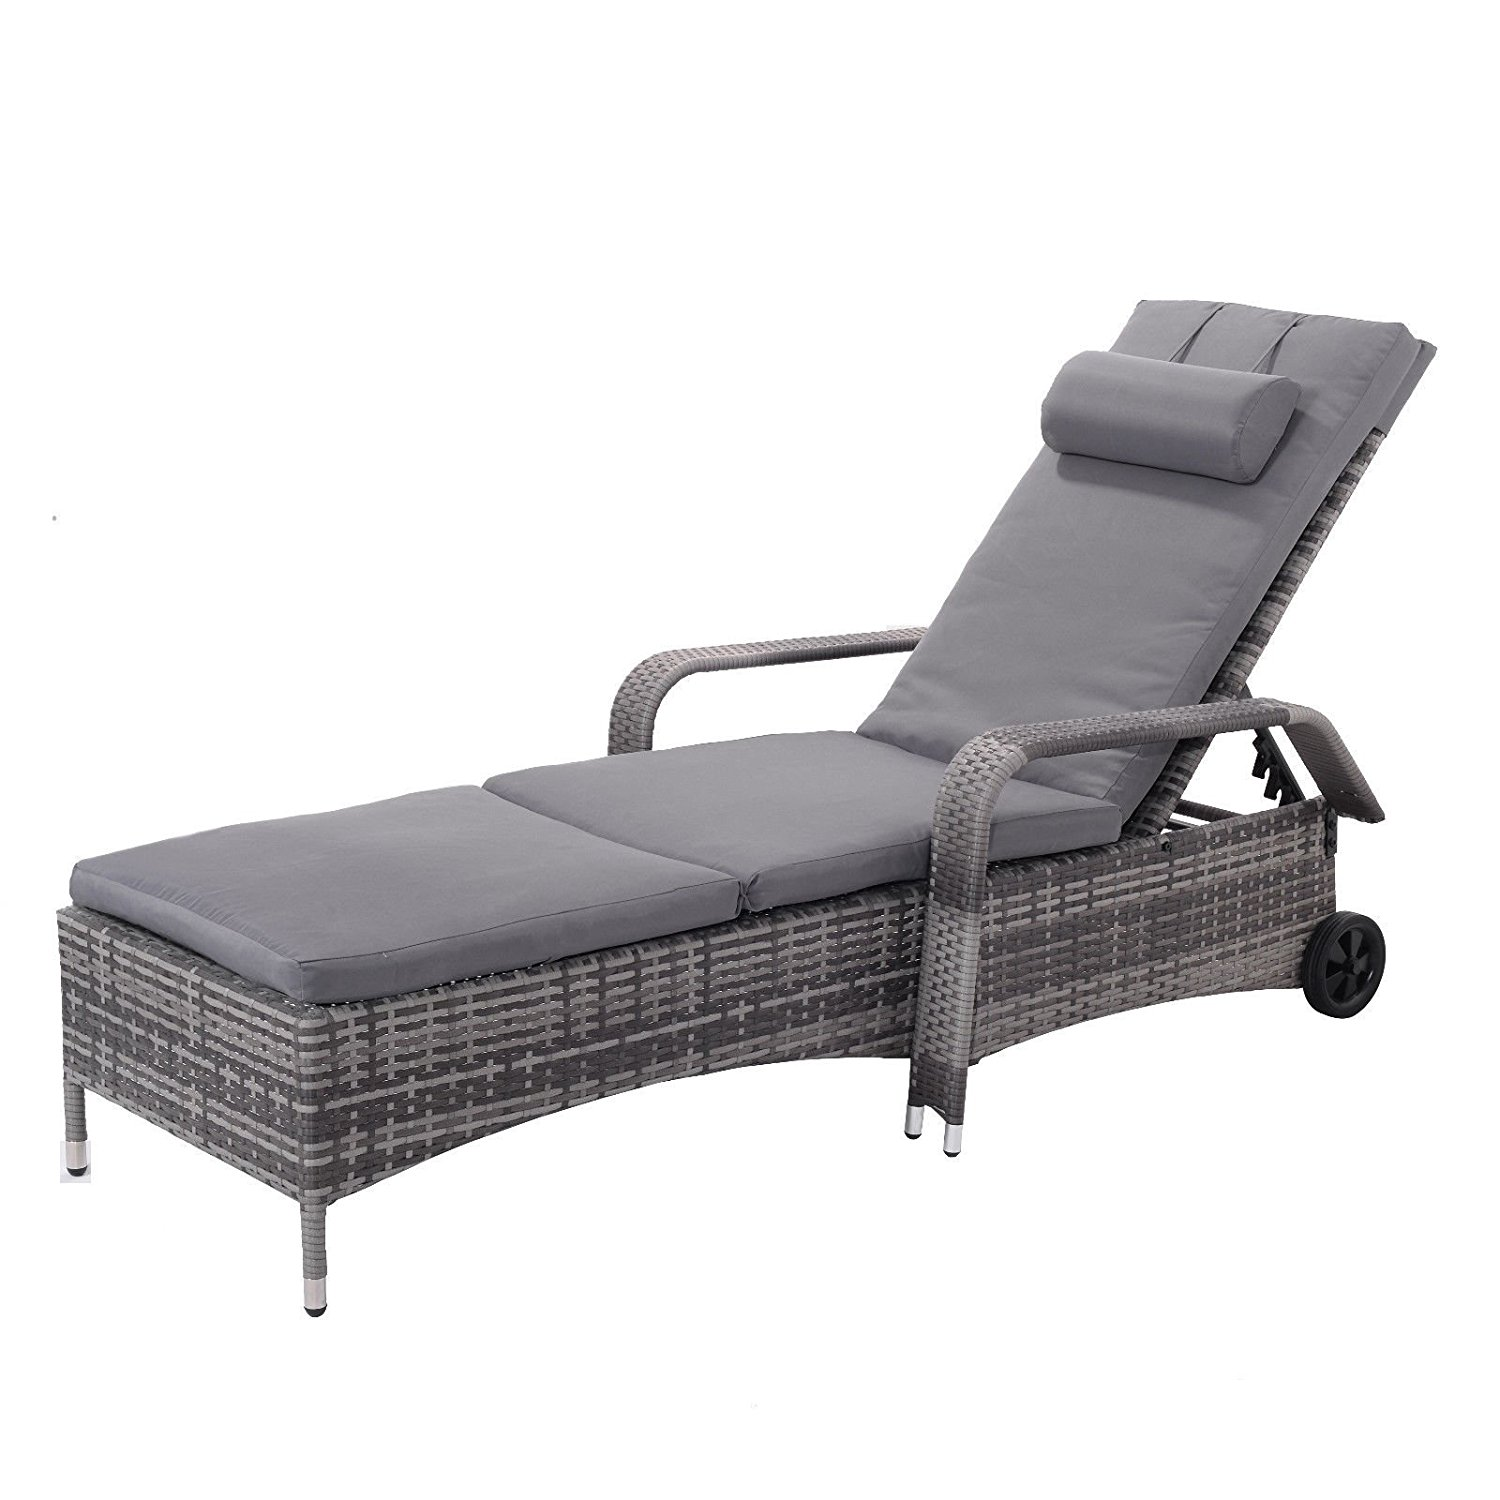 Sarutaya Chair Adjustable Outdoor Lounge Chaise Patio Recliner Pool Furniture Beach Reclining Garden Cushion Folding Bed